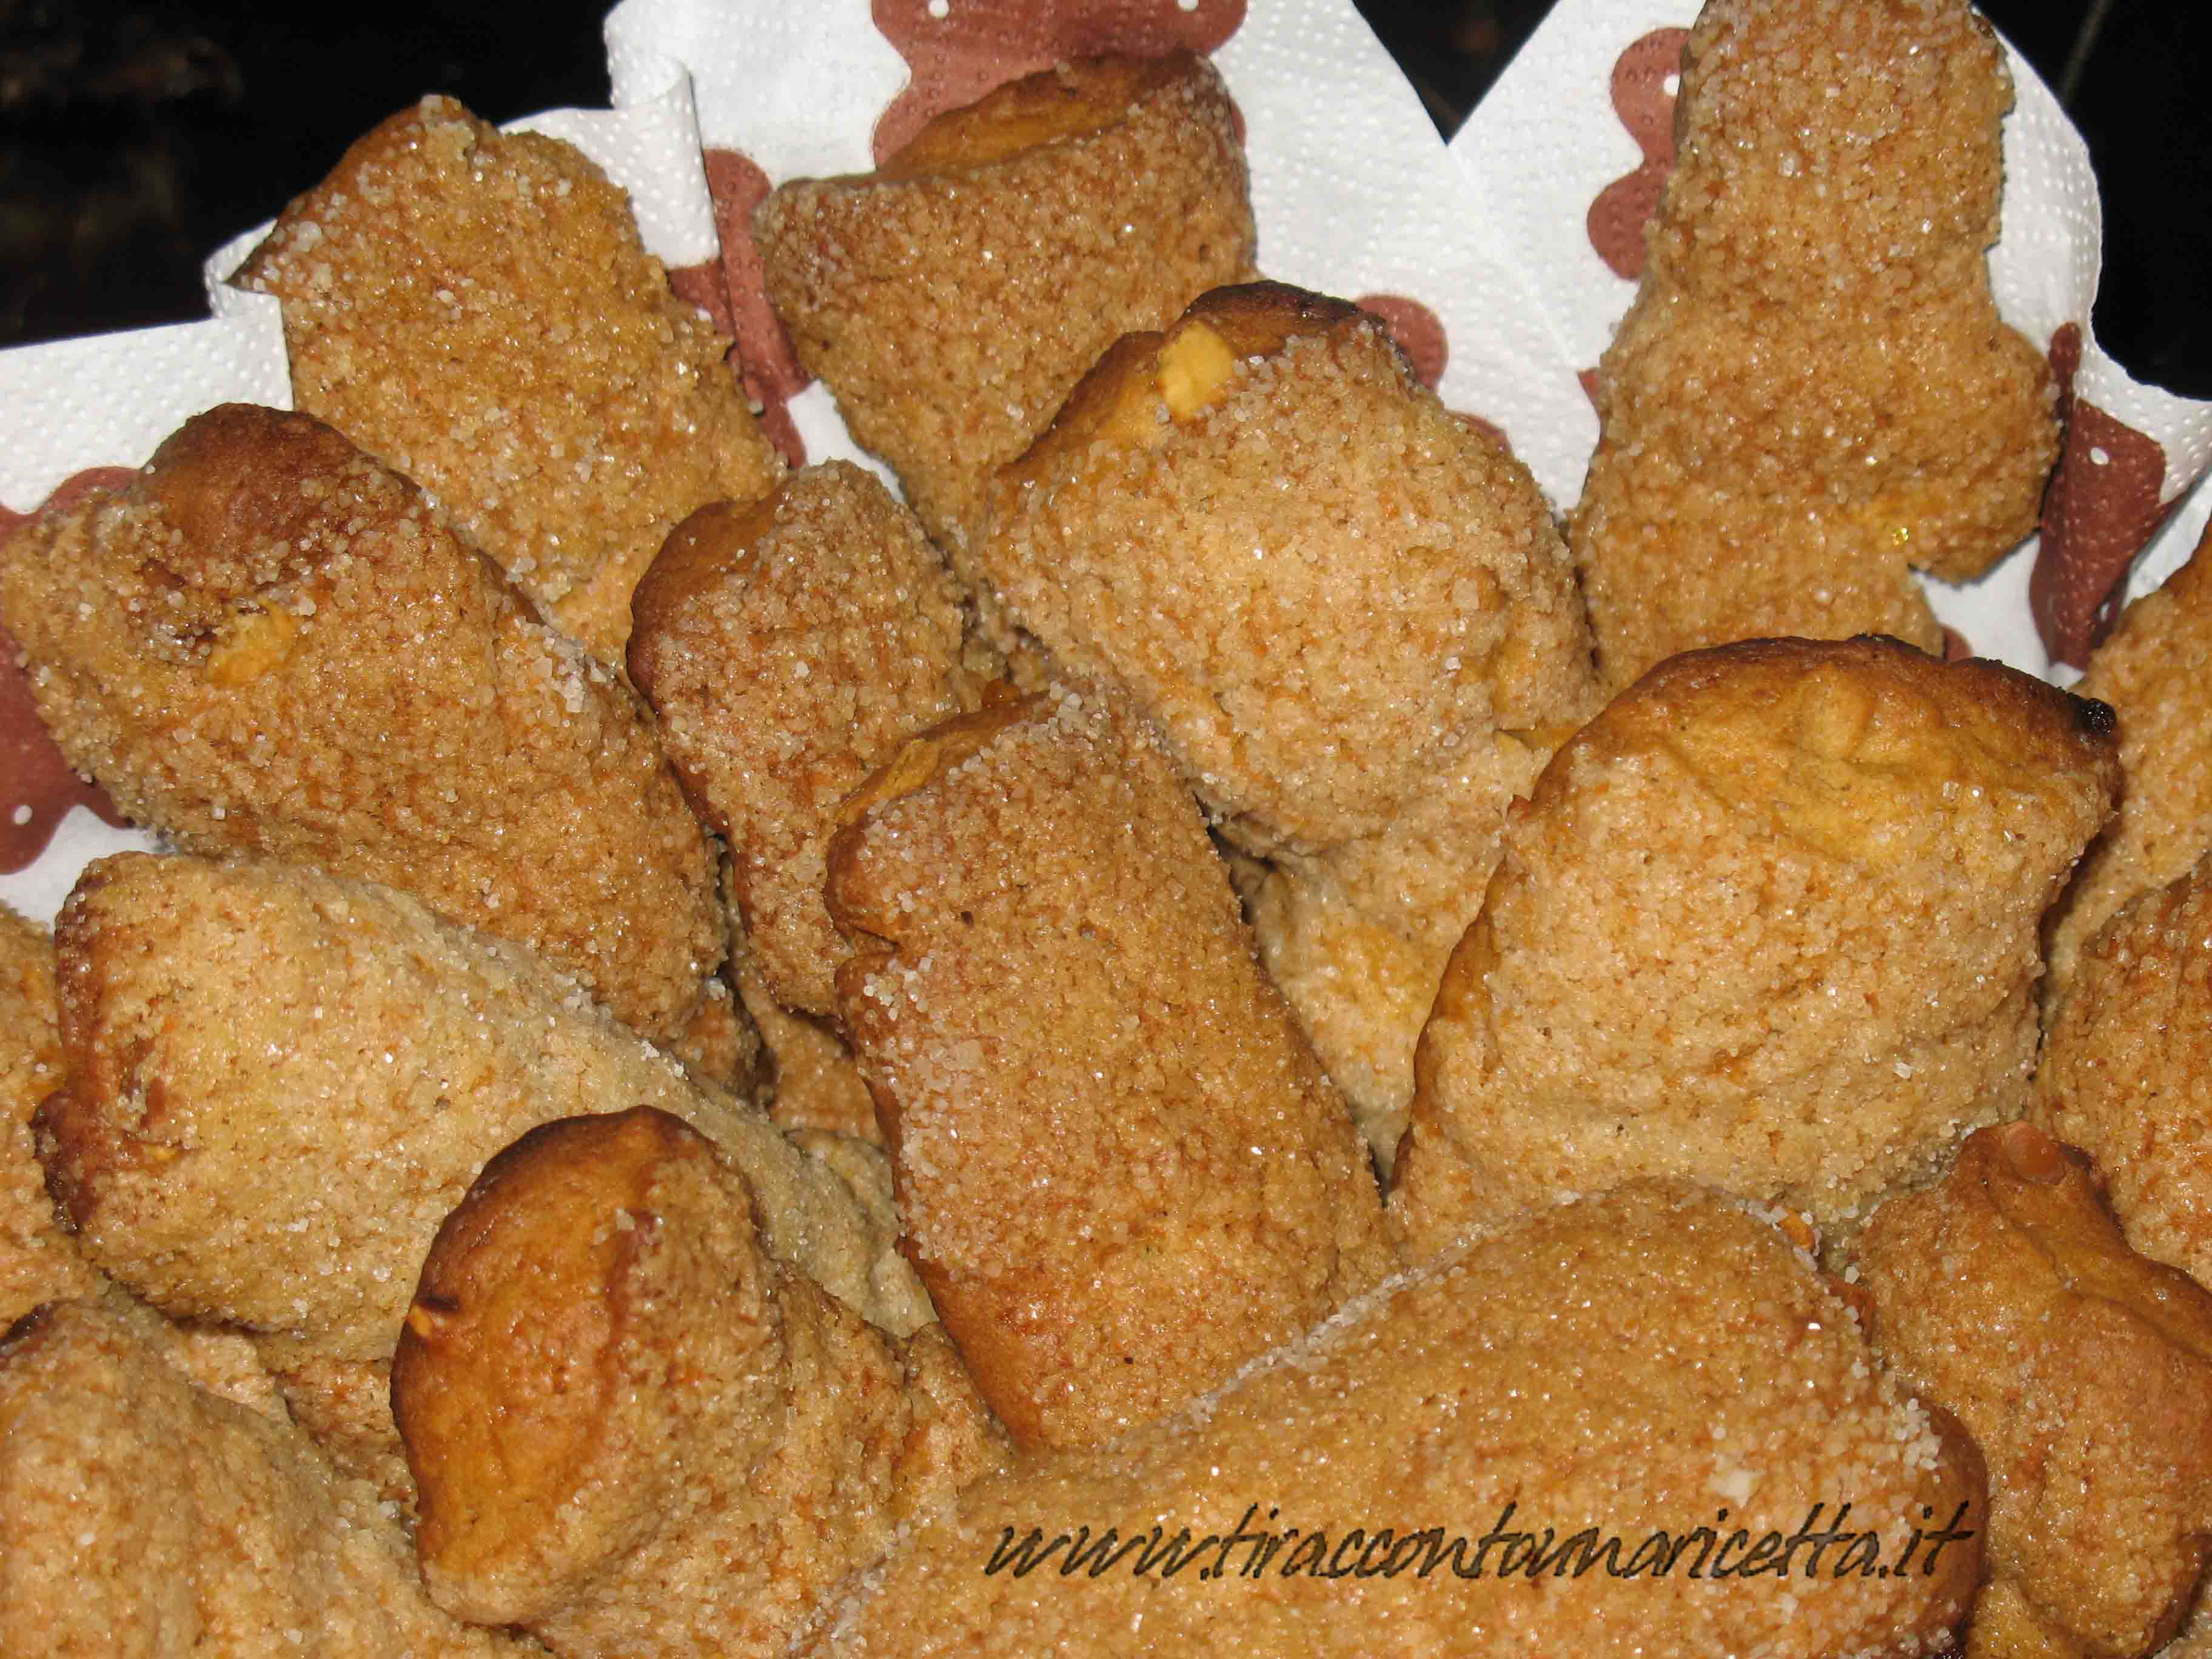 Almond cookies with Moscato di Terracina passito